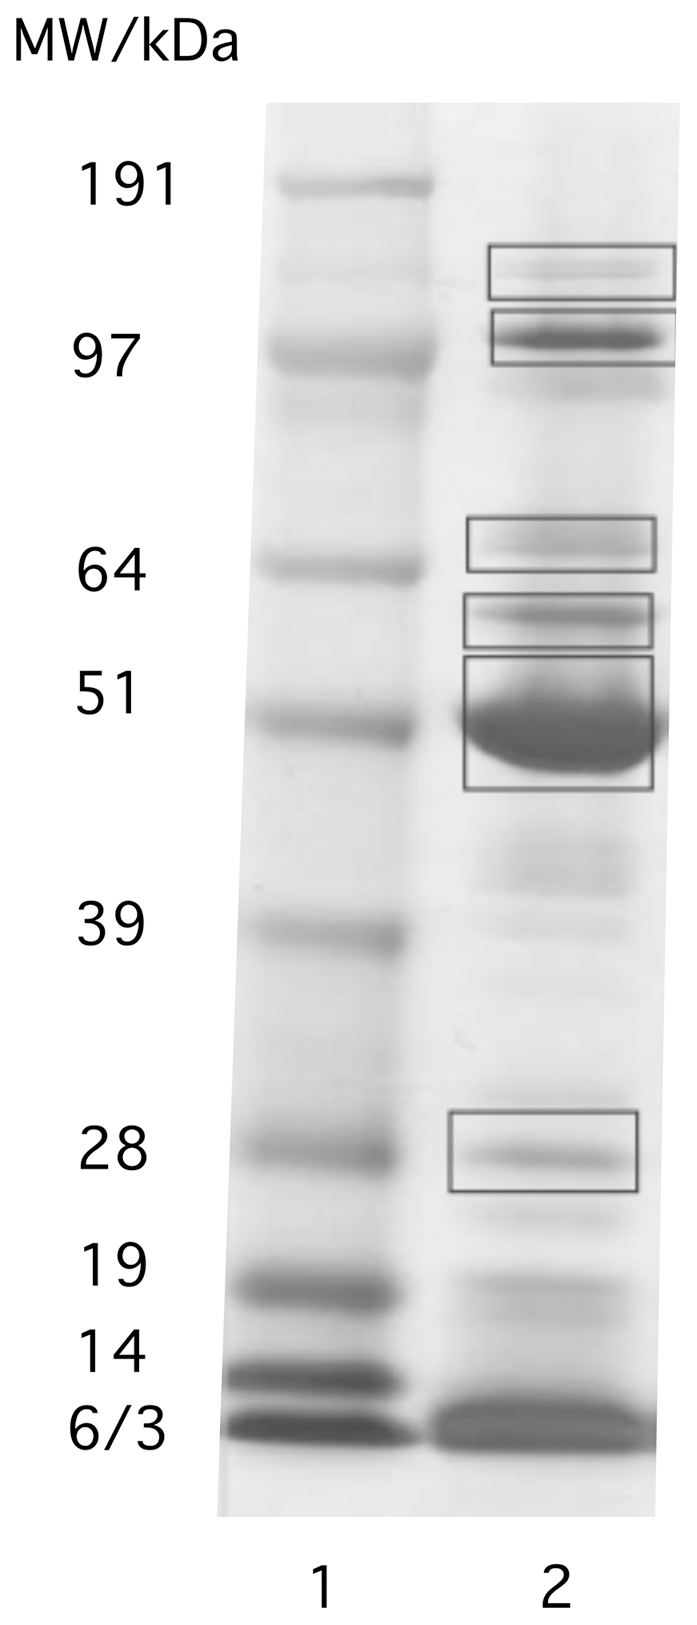 SDS-PAGE pattern of proteins associated with PBCV-1 DNA. DNA was released from capsids by osmotic shock and separated from soluble proteins by centrifugation. The DNA-containing pellet was treated with DNase to release DNA-bound proteins. The framed bands were excised and used for MALDI TOF analysis. Lane 1: weight marker, lane 2: proteins obtained after DNAse treatment.